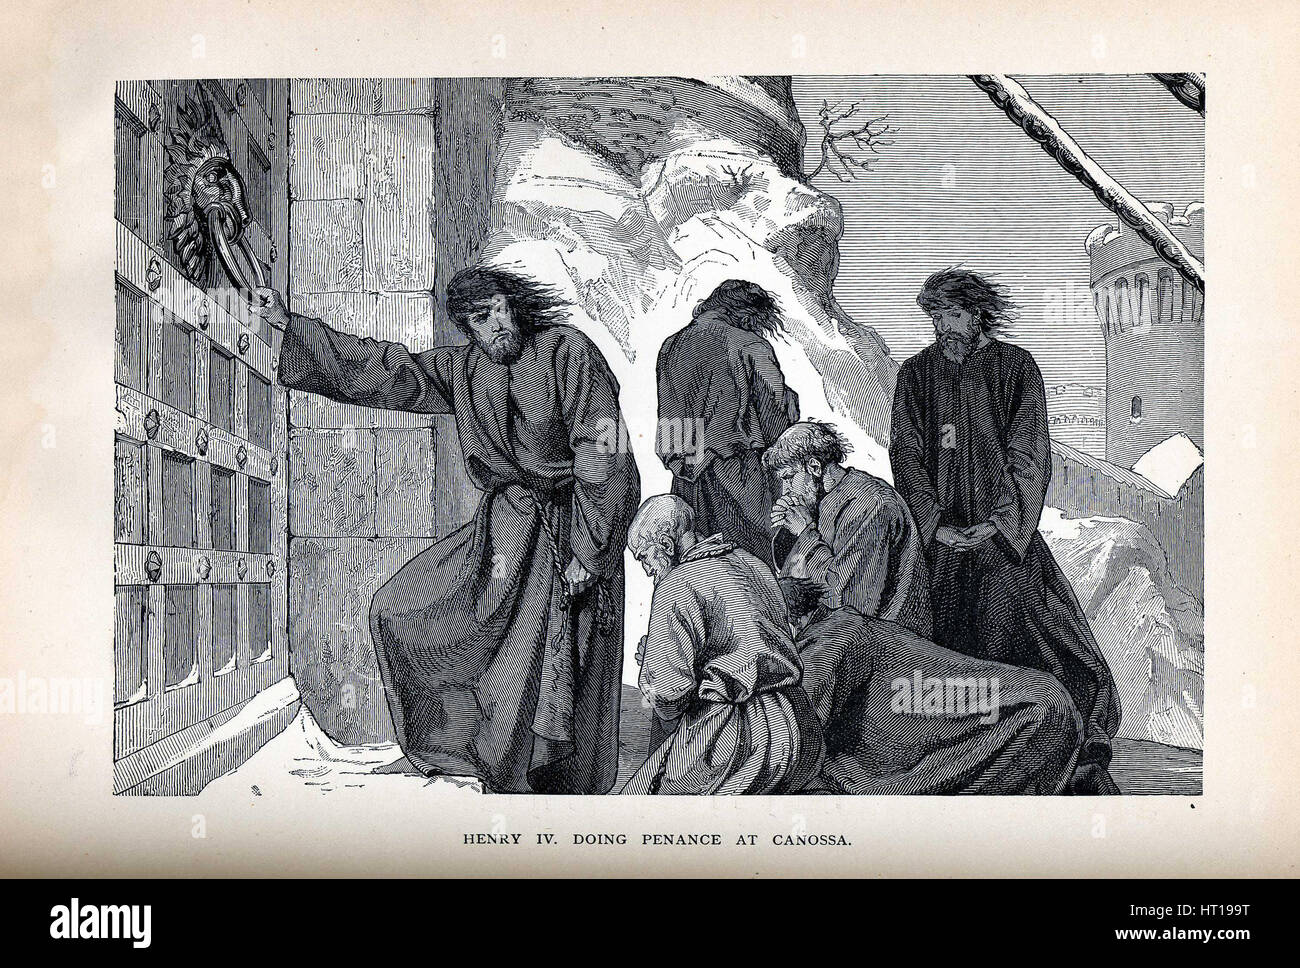 Henry IV Doing Penance at Canossa, 1882. Artist: Anonymous - Stock Image